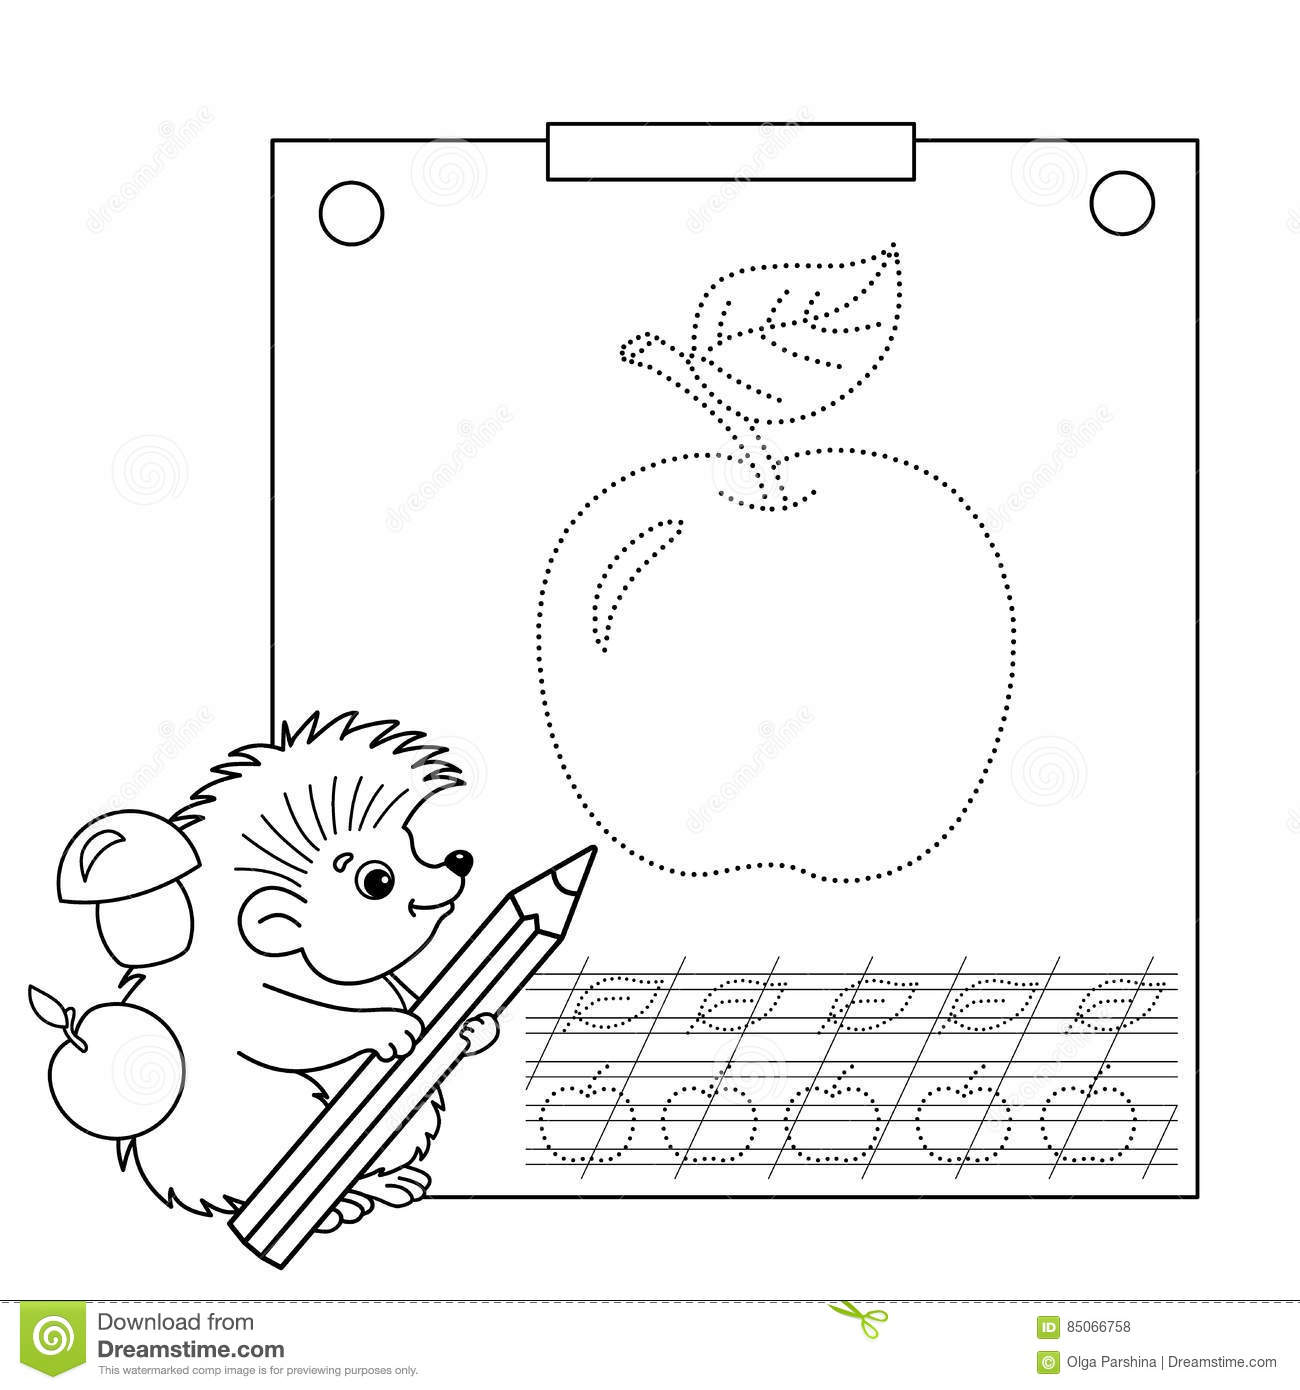 Connect The Dots Picture And Coloring Page Tracing Worksheet Puzzle For Kids Stock Vector